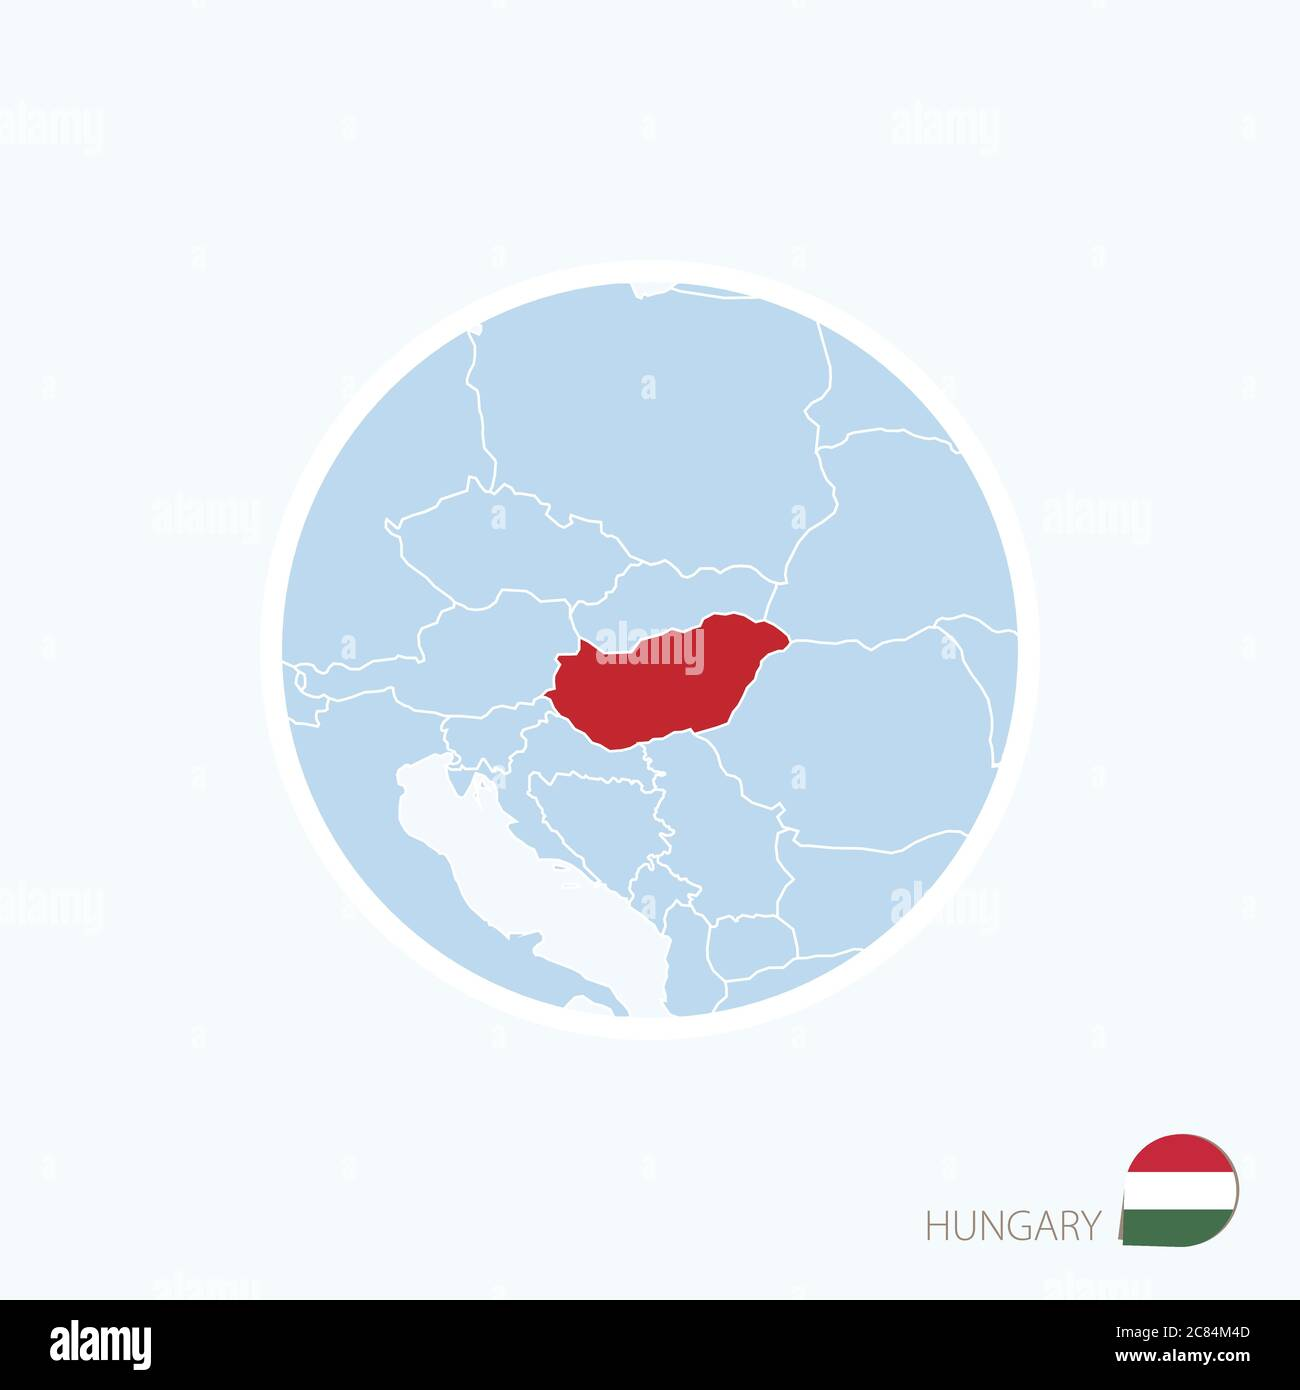 Picture of: Map Icon Of Hungary Blue Map Of Europe With Highlighted Hungary In Red Color Vector Illustration Stock Vector Image Art Alamy